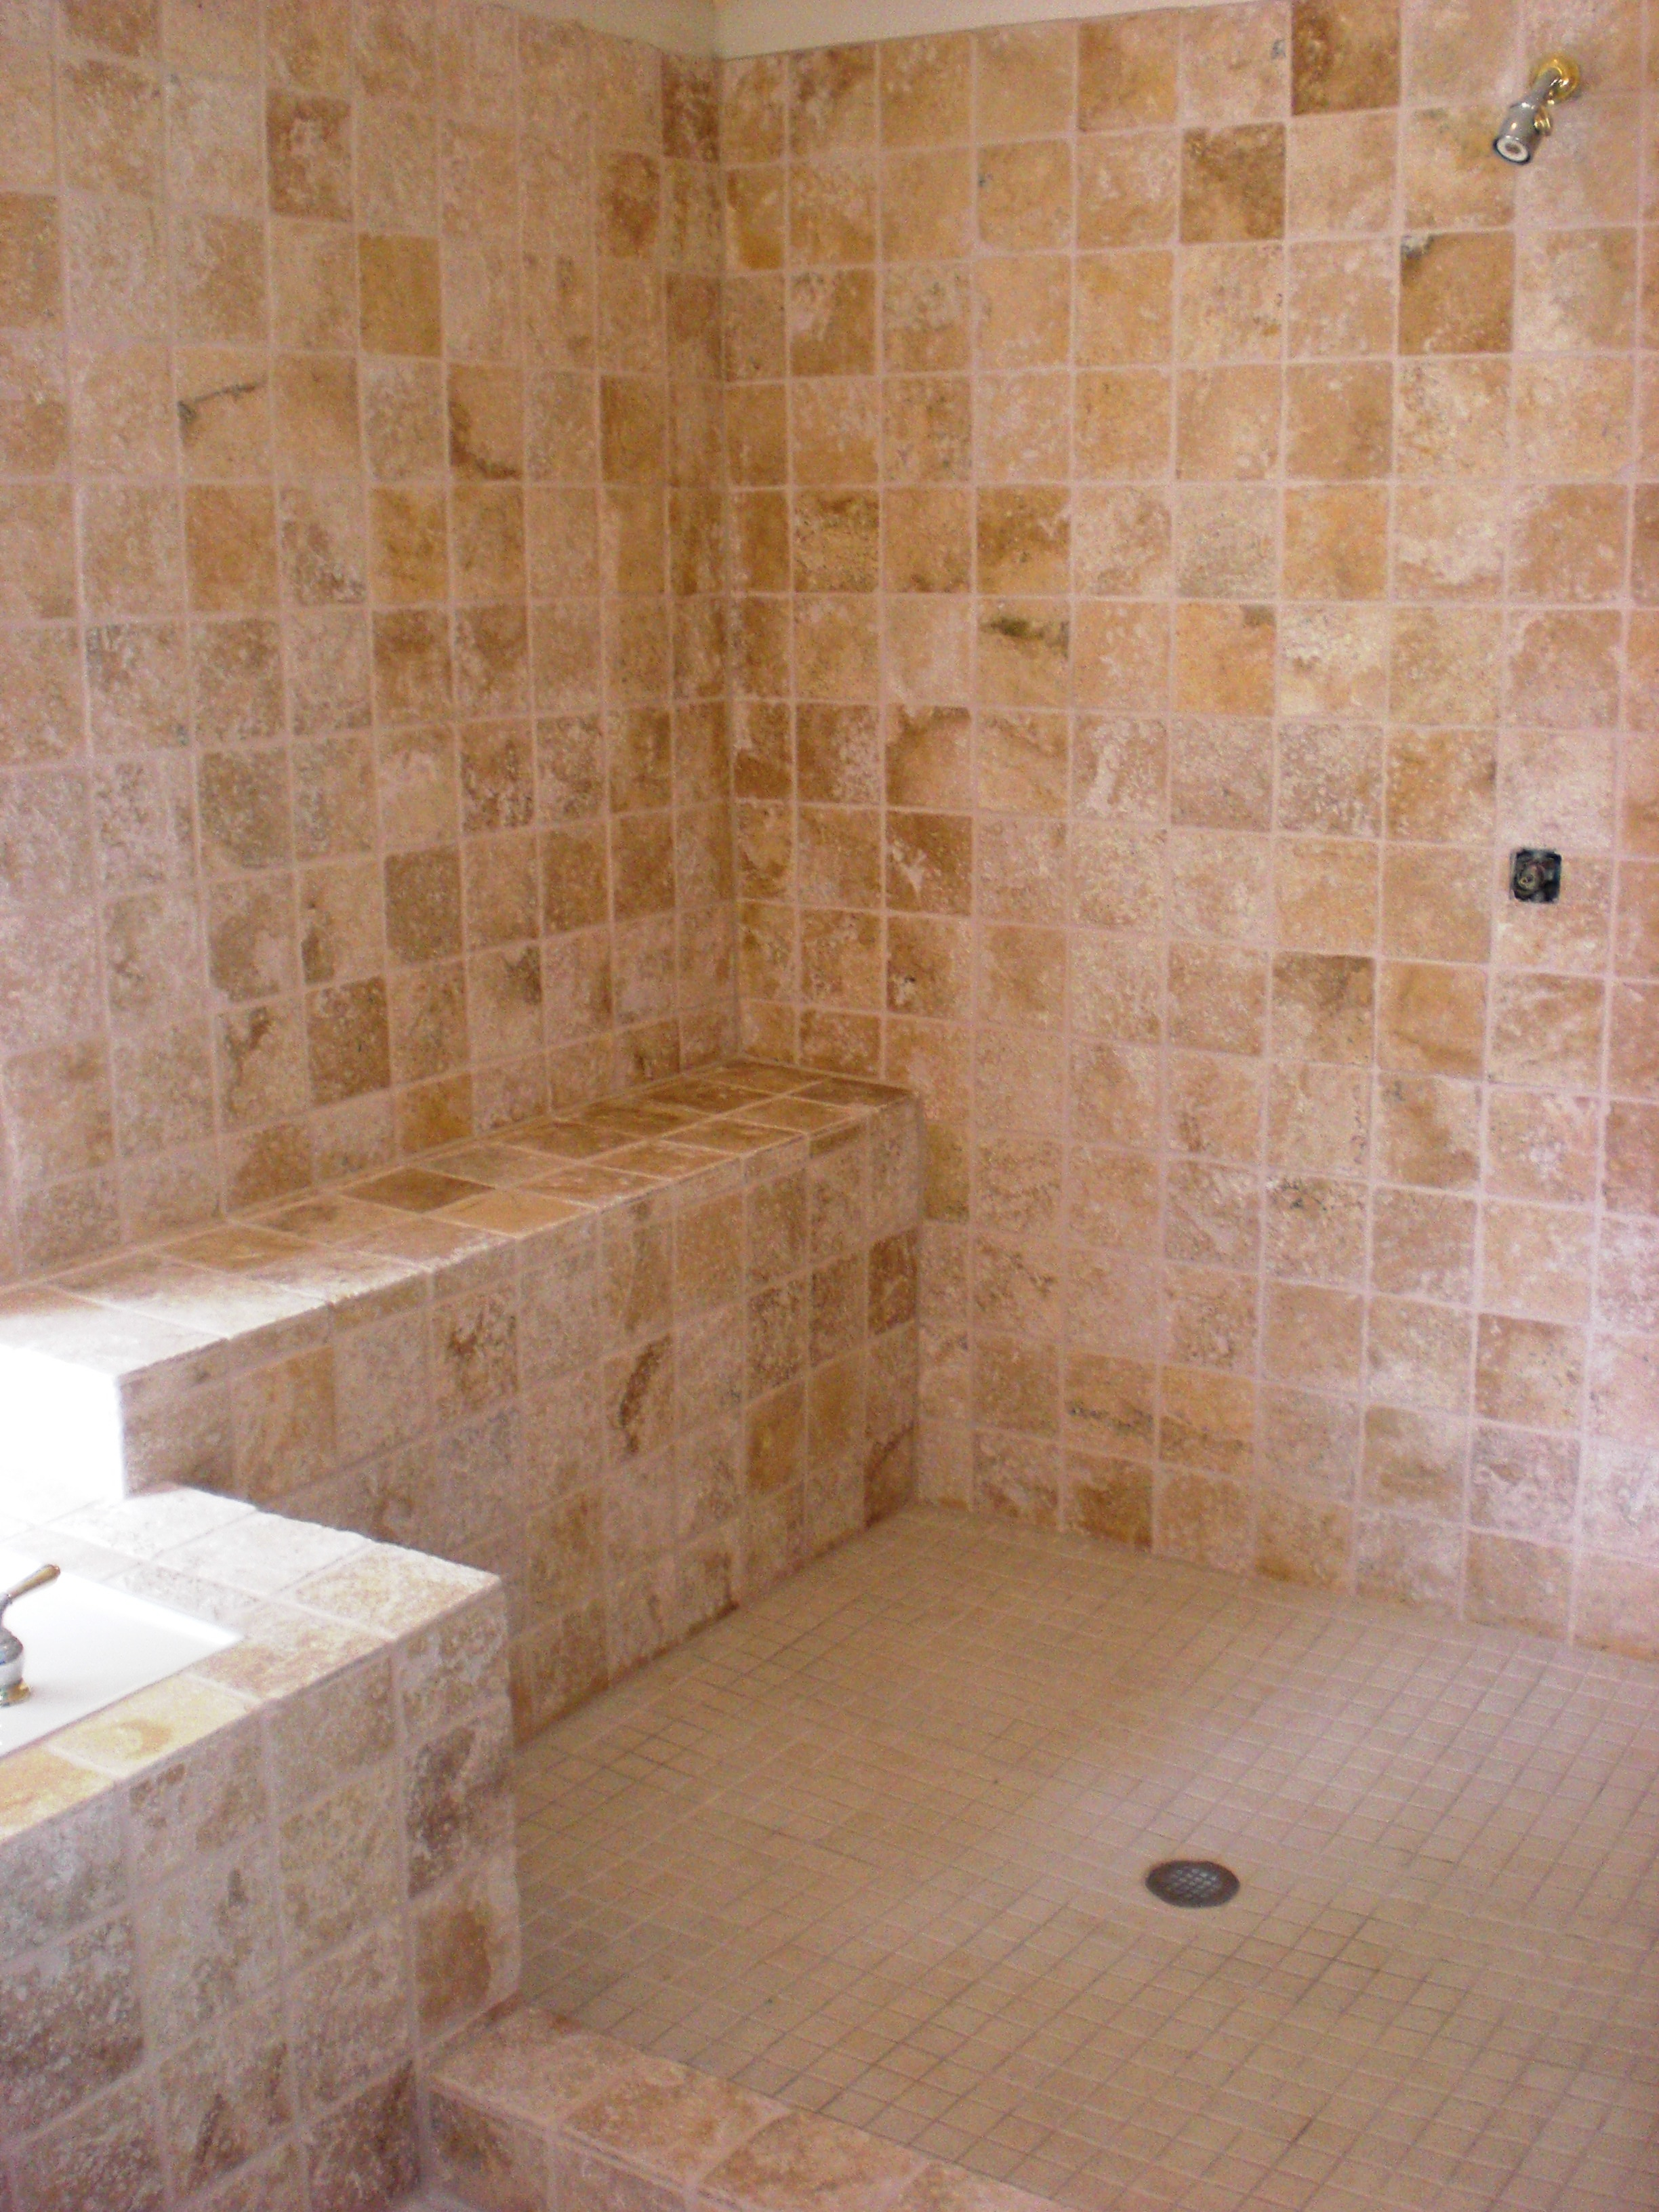 ... Porcelain Bathroom Wall Tile Prices Resilient Installation Mosaic  ... Part 64